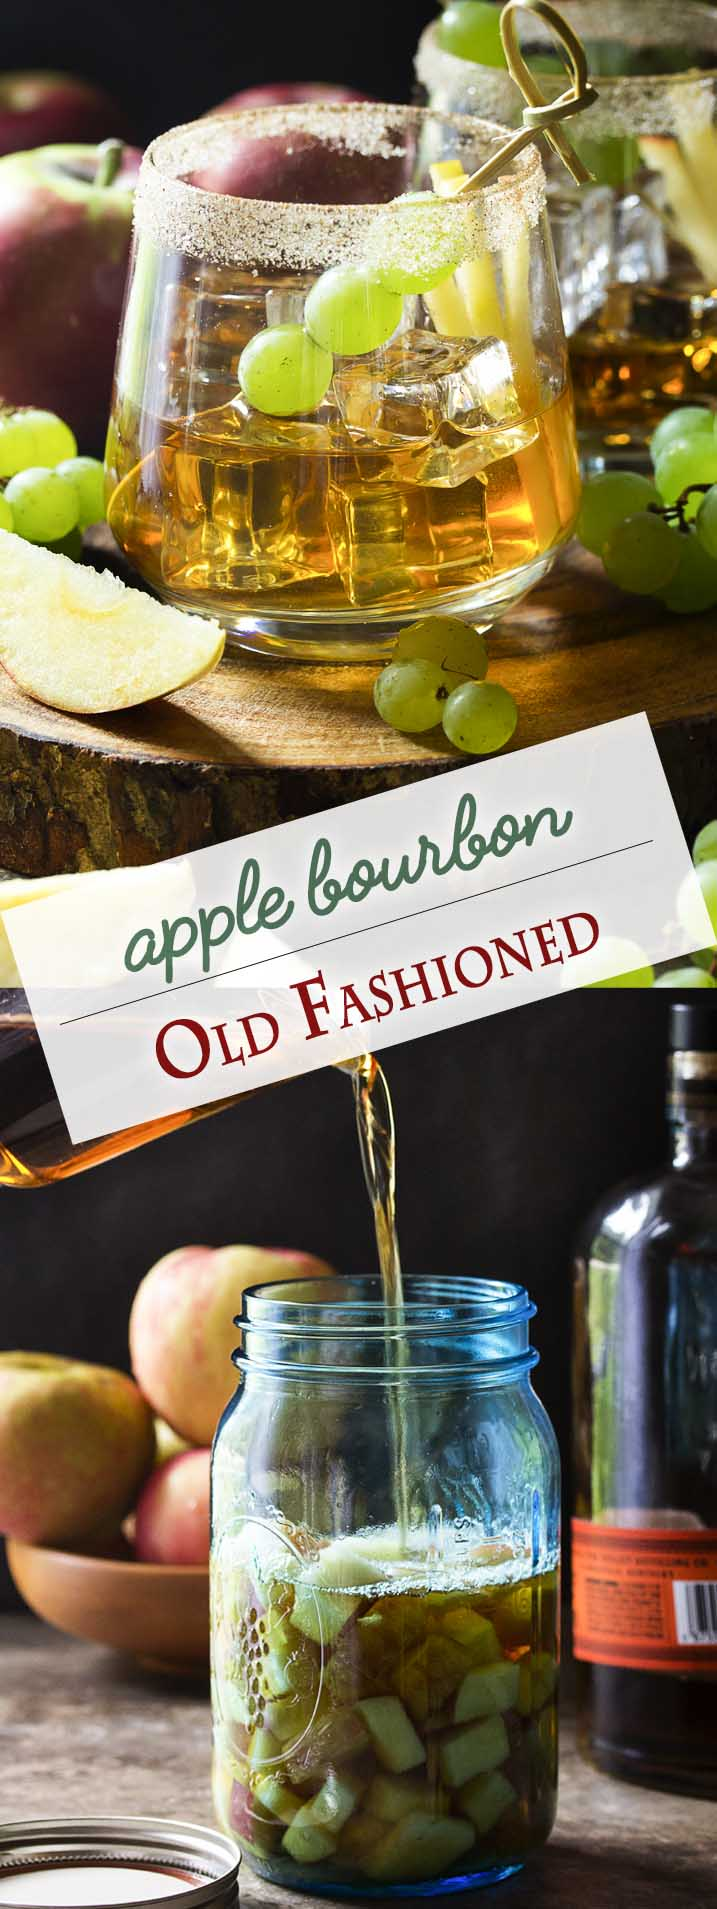 Welcome fall with this maple old fashioned which features maple syrup and apple infused bourbon for a very New England take on the classic cocktail. | justalittlebitofbacon.com